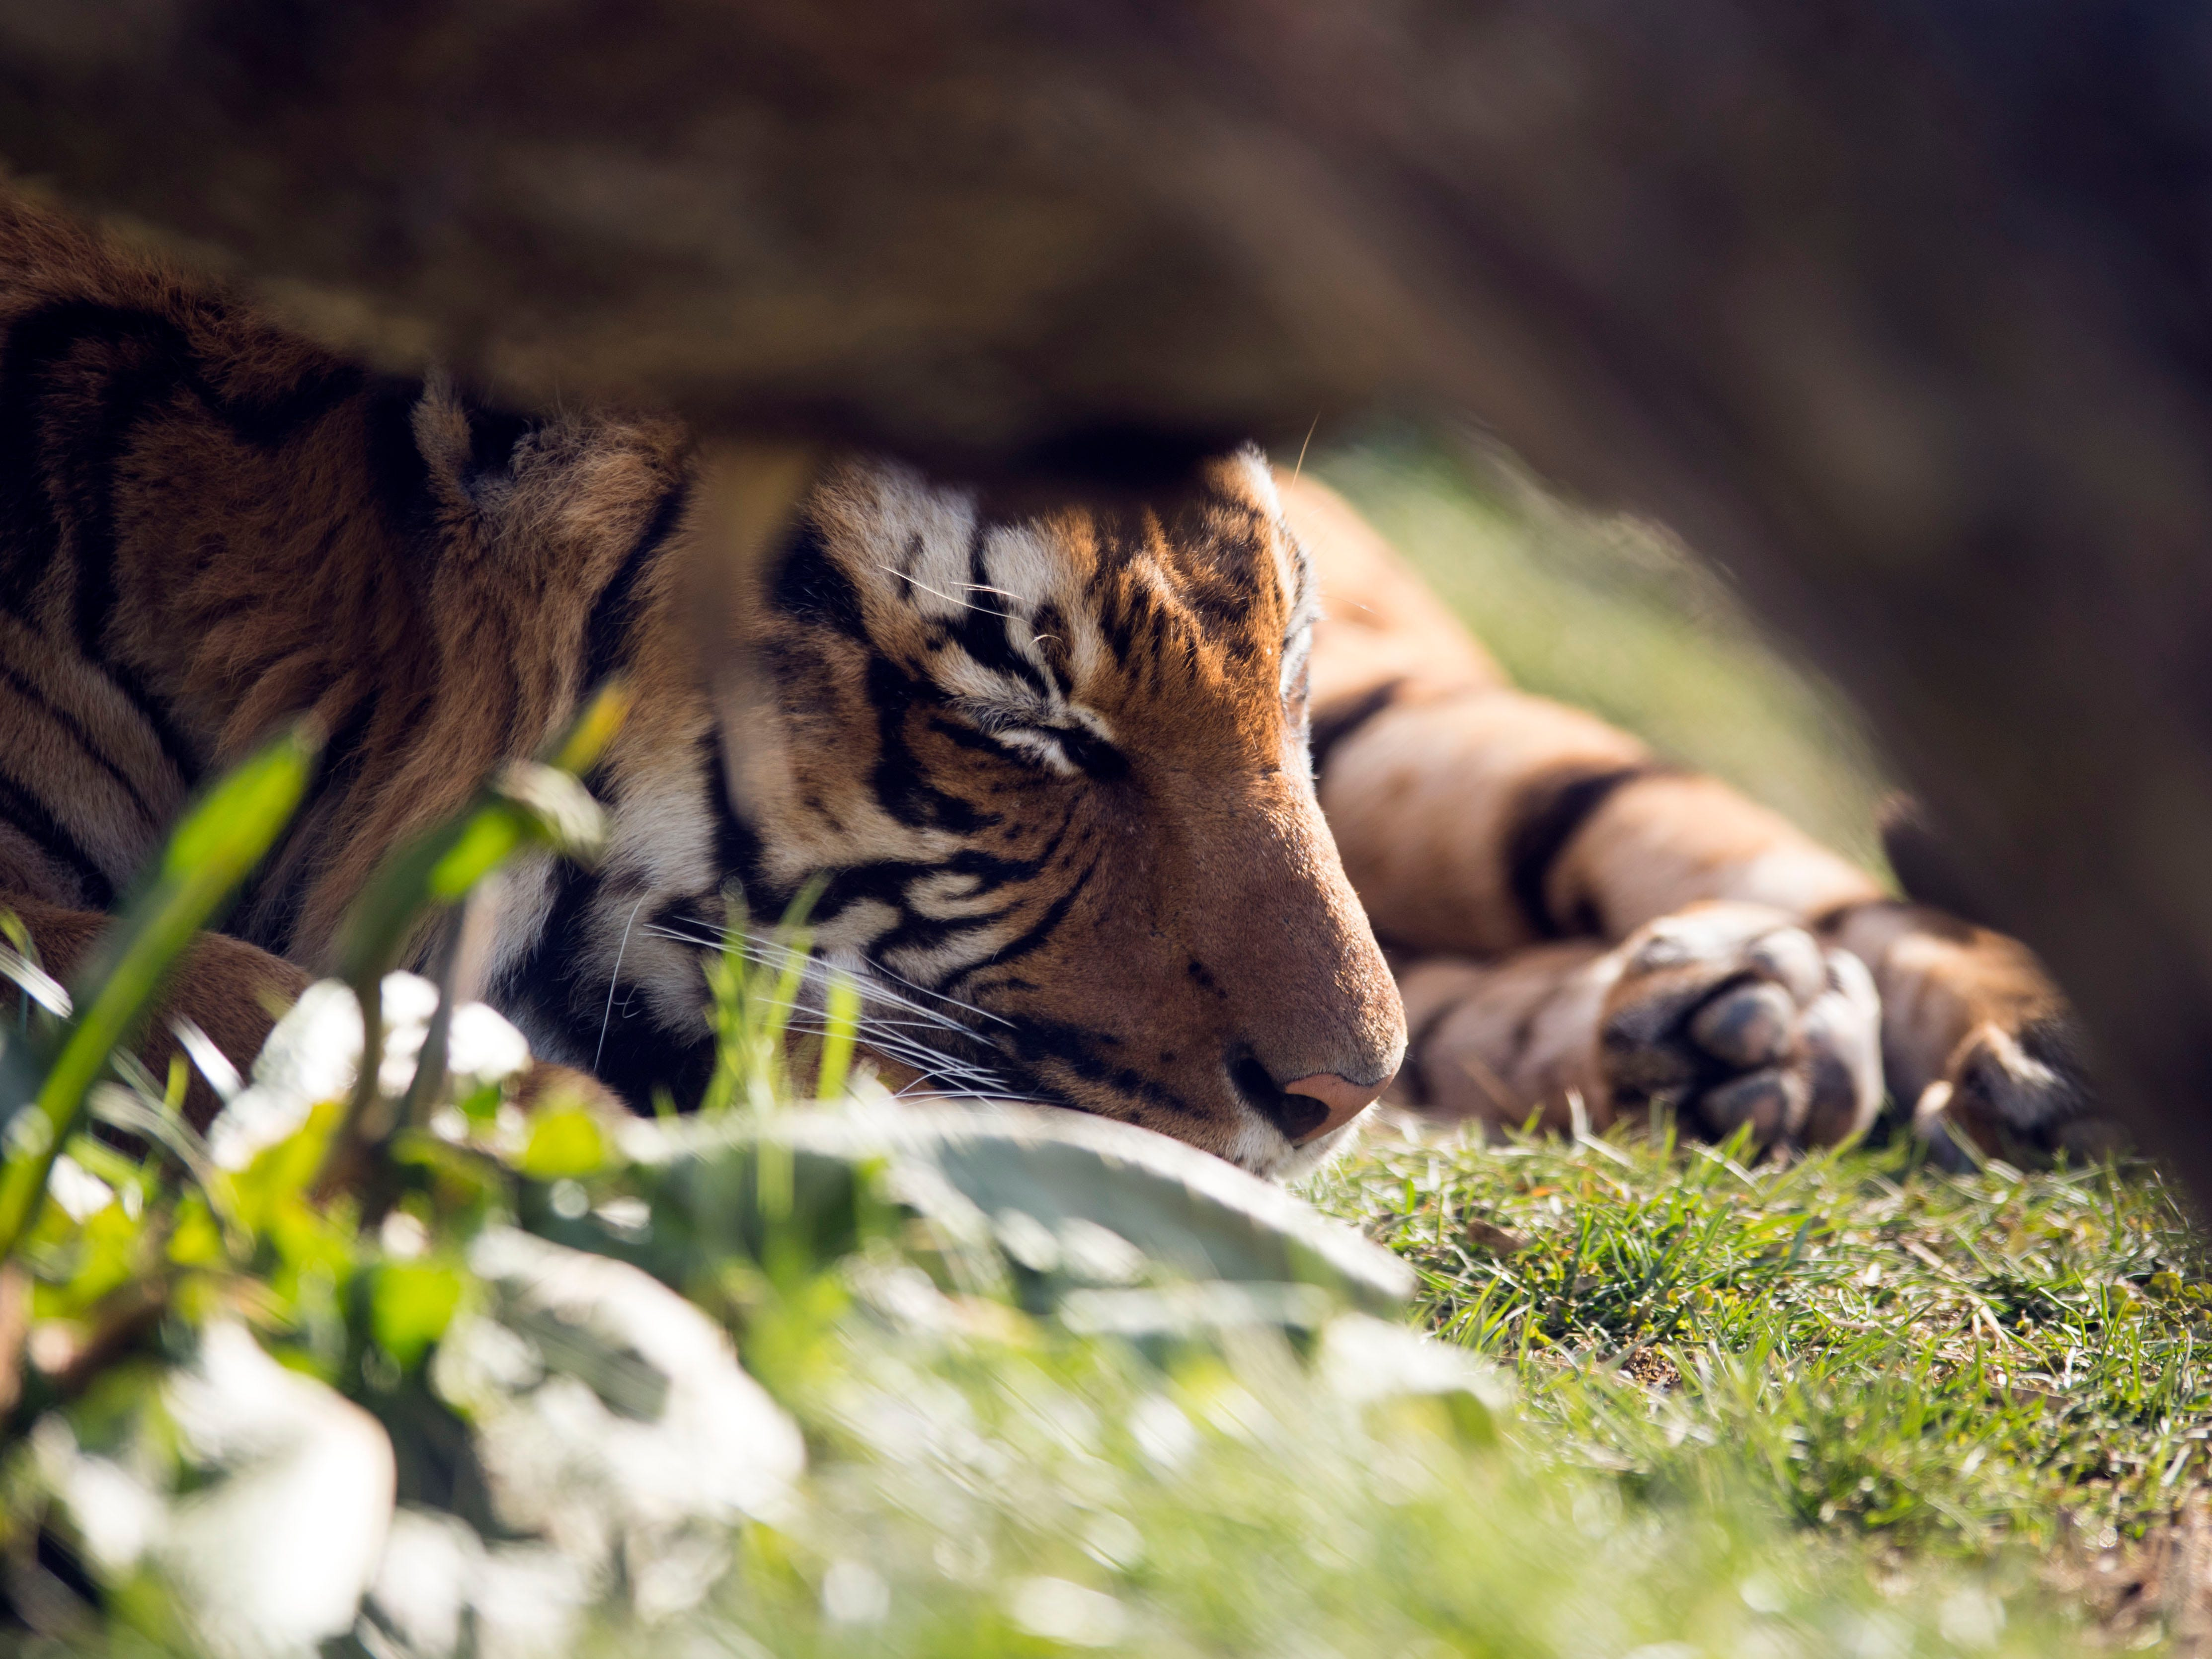 Bashir, a Malayan Tiger, rests in the sun at Zoo Knoxville's Tiger Forest habitat on Sunday, February 3, 2019.